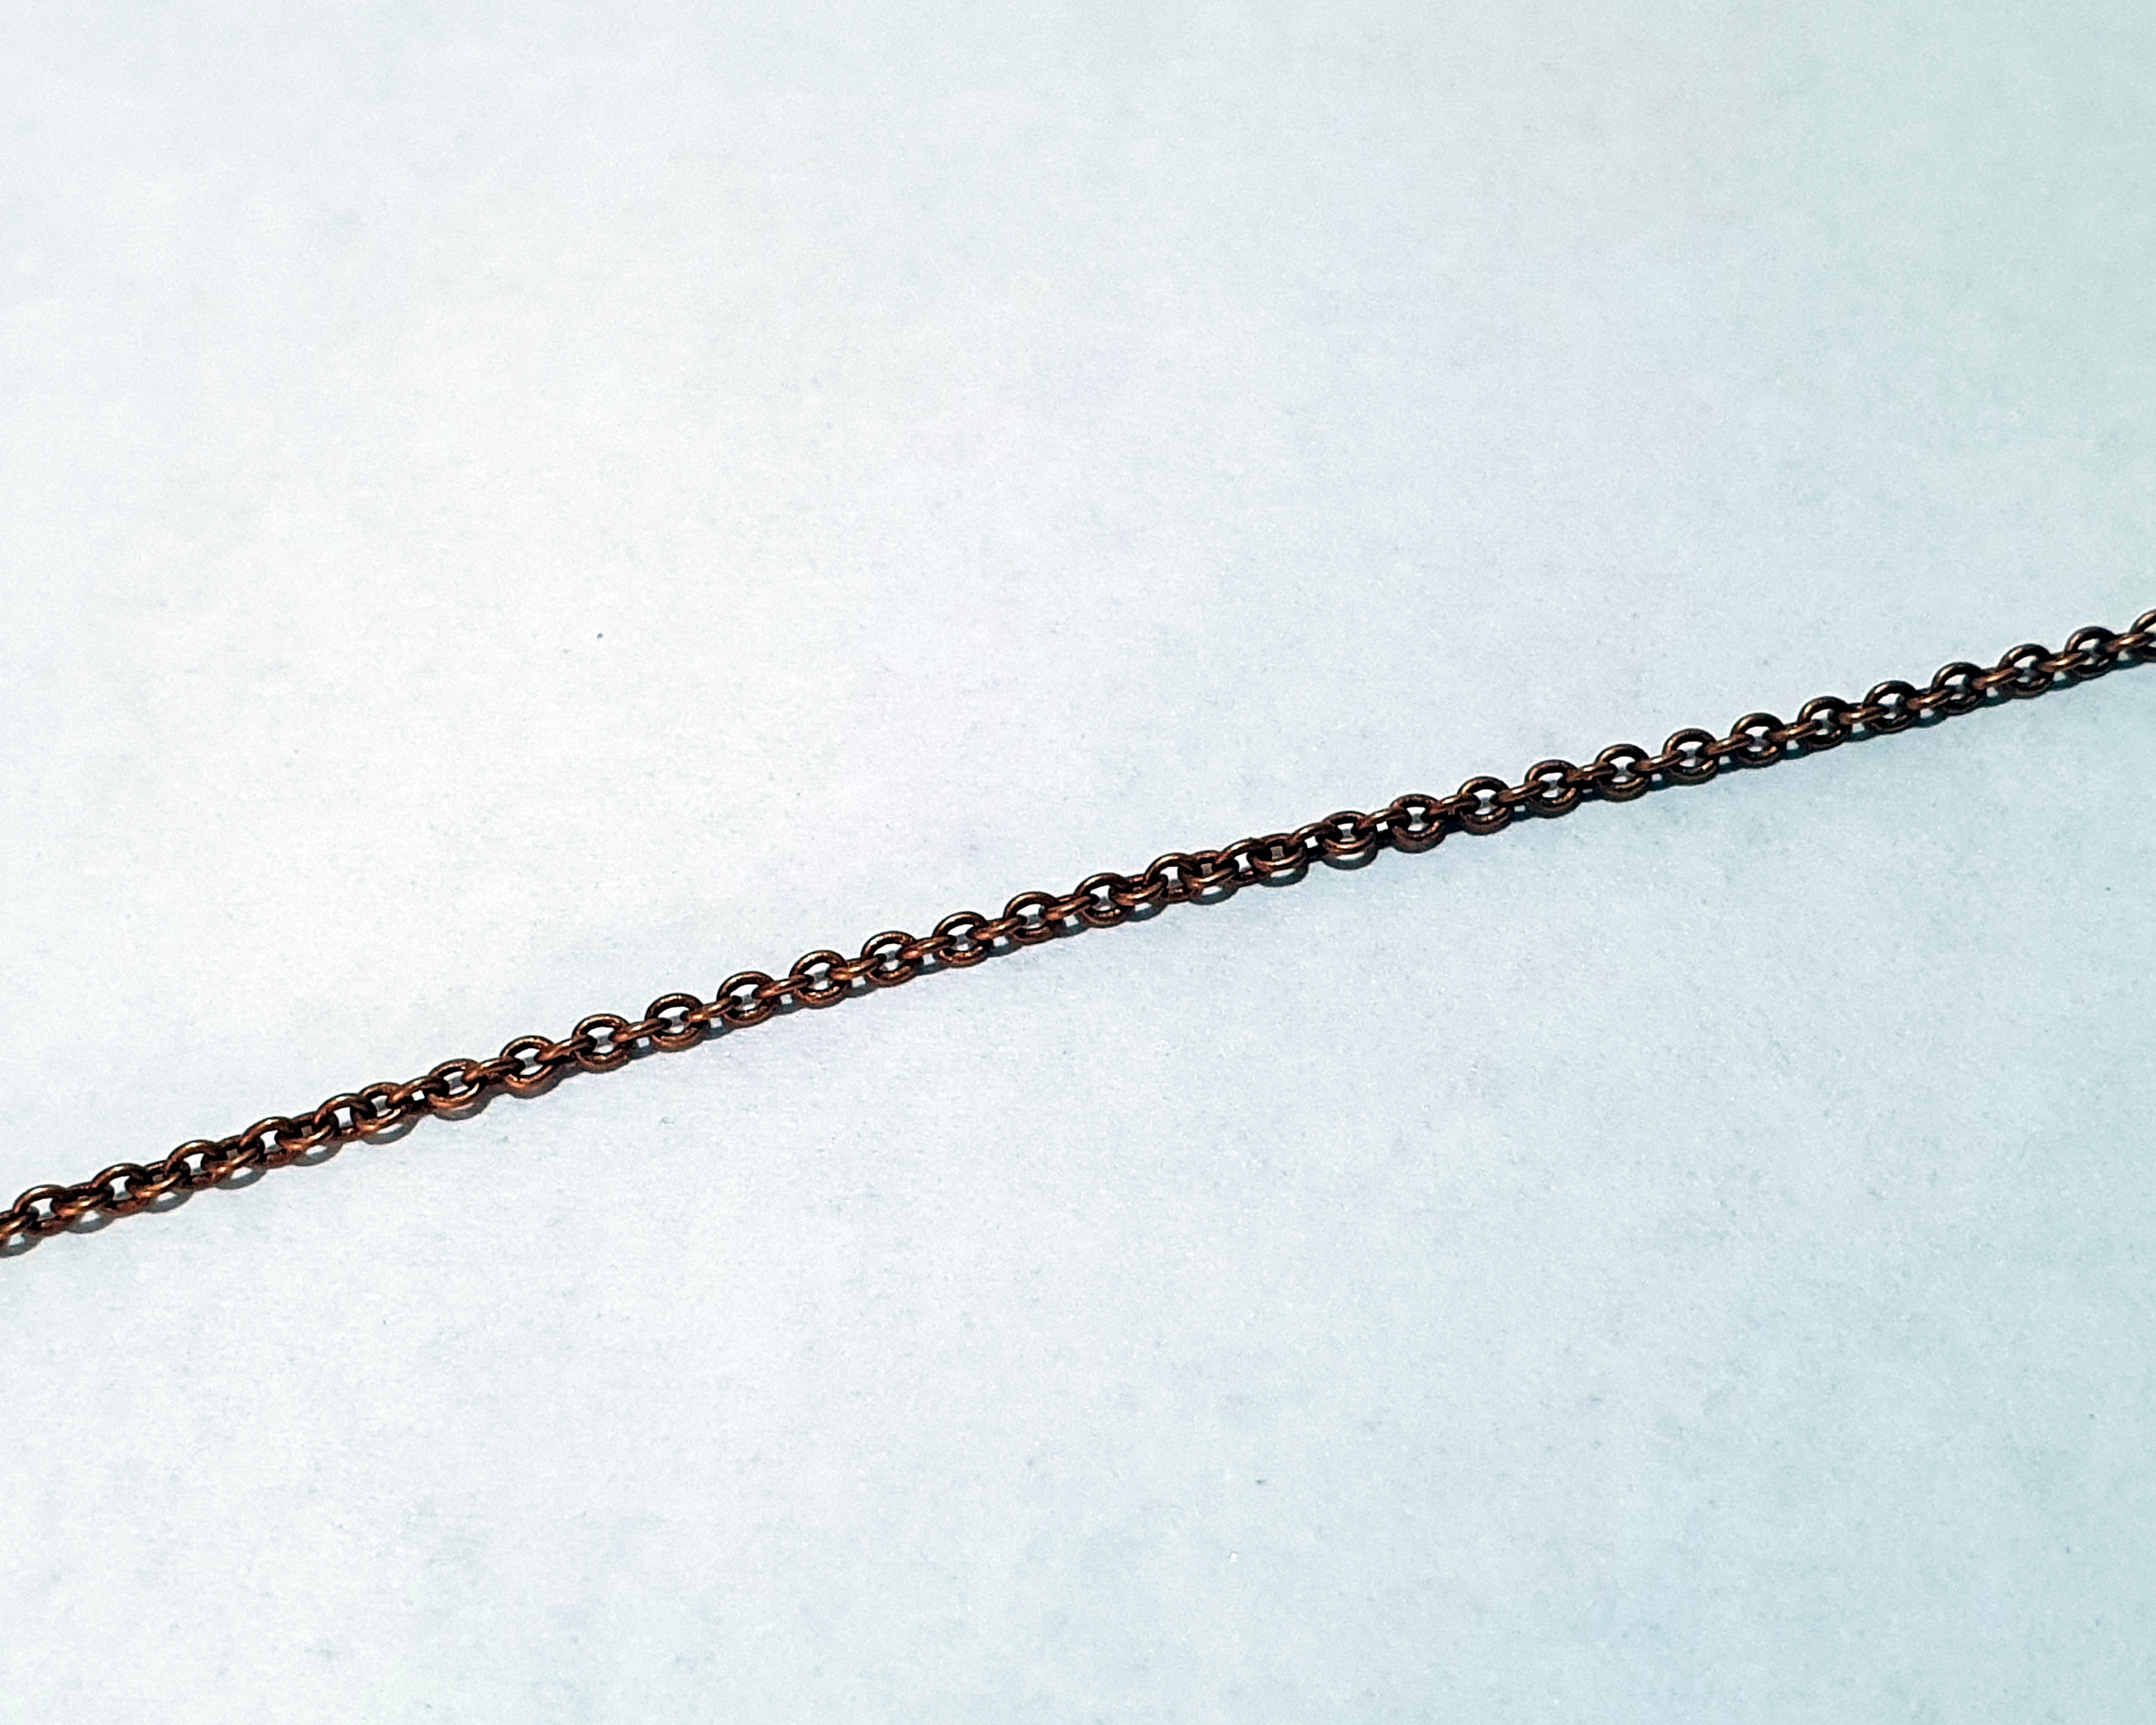 Hobby Chain 1.5mm x 2mm - 30cm Length